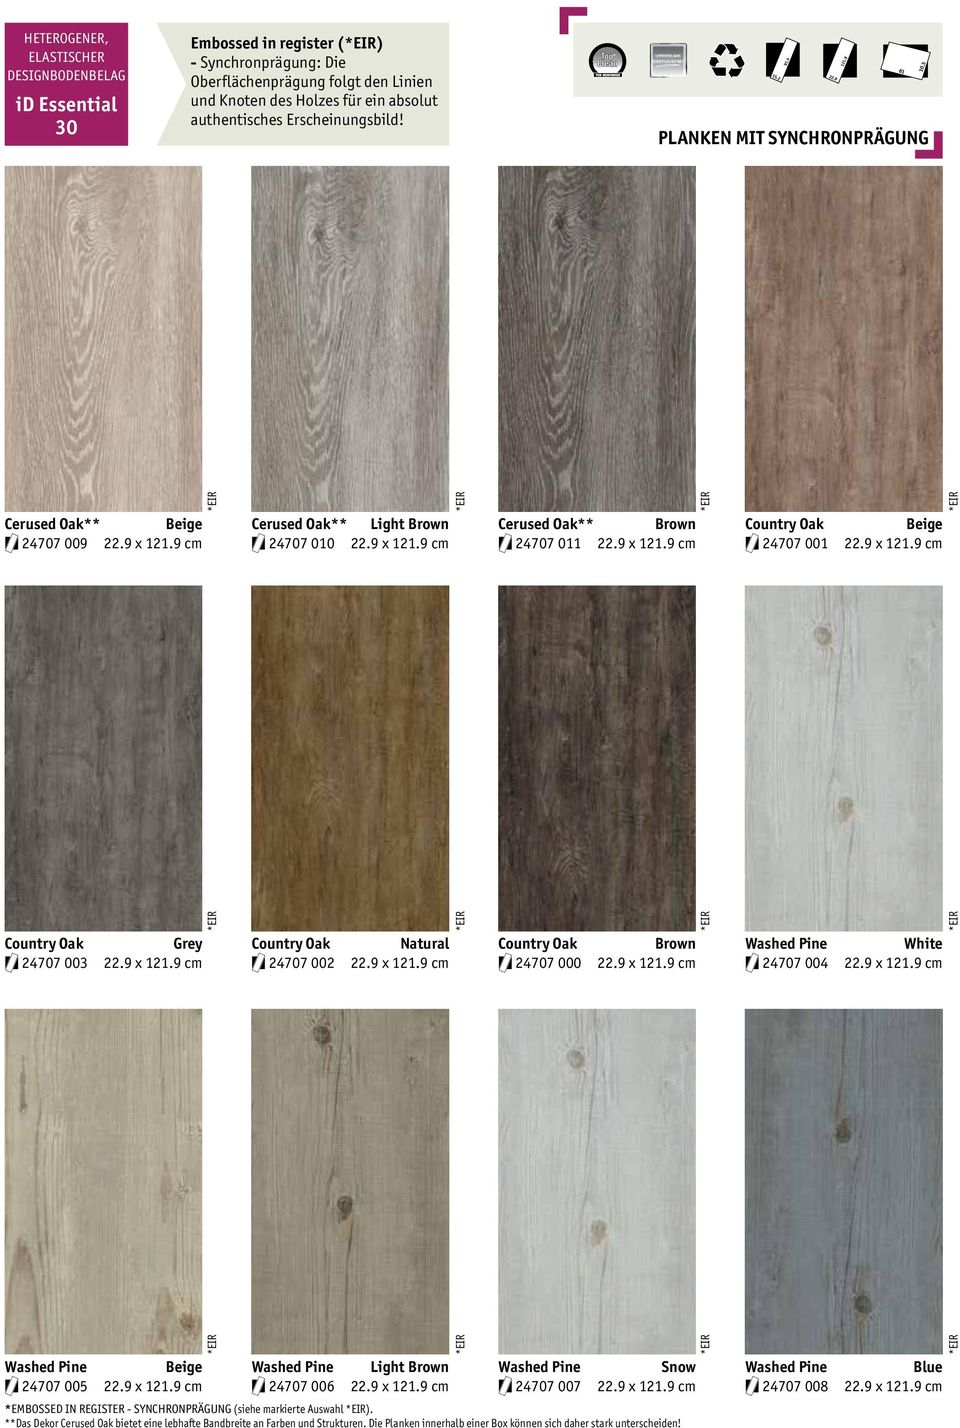 Oak Natural Country Oak Brown Washed Pine White 24707 003 x cm 24707 002 x cm 24707 000 x cm 24707 004 x cm Washed Pine Beige Washed Pine Light Brown Washed Pine Snow Washed Pine Blue 24707 005 x cm